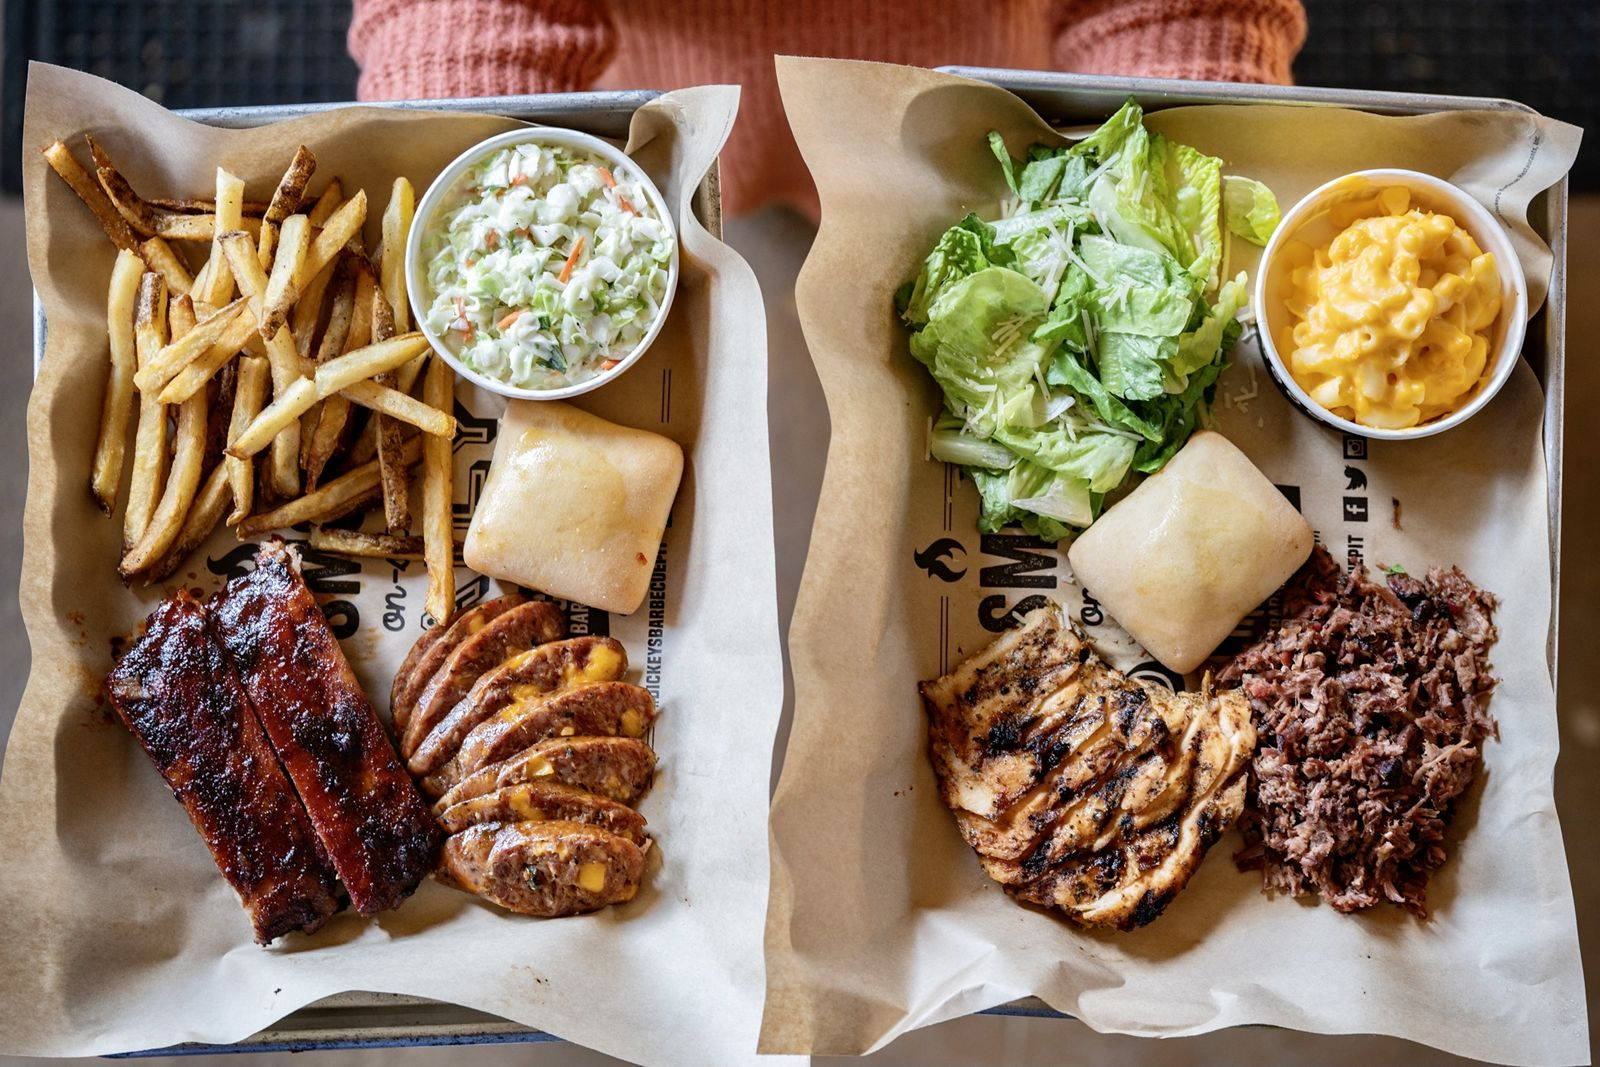 At Dickey's, all barbecued meats are smoked onsite in a hickory wood burning pit.